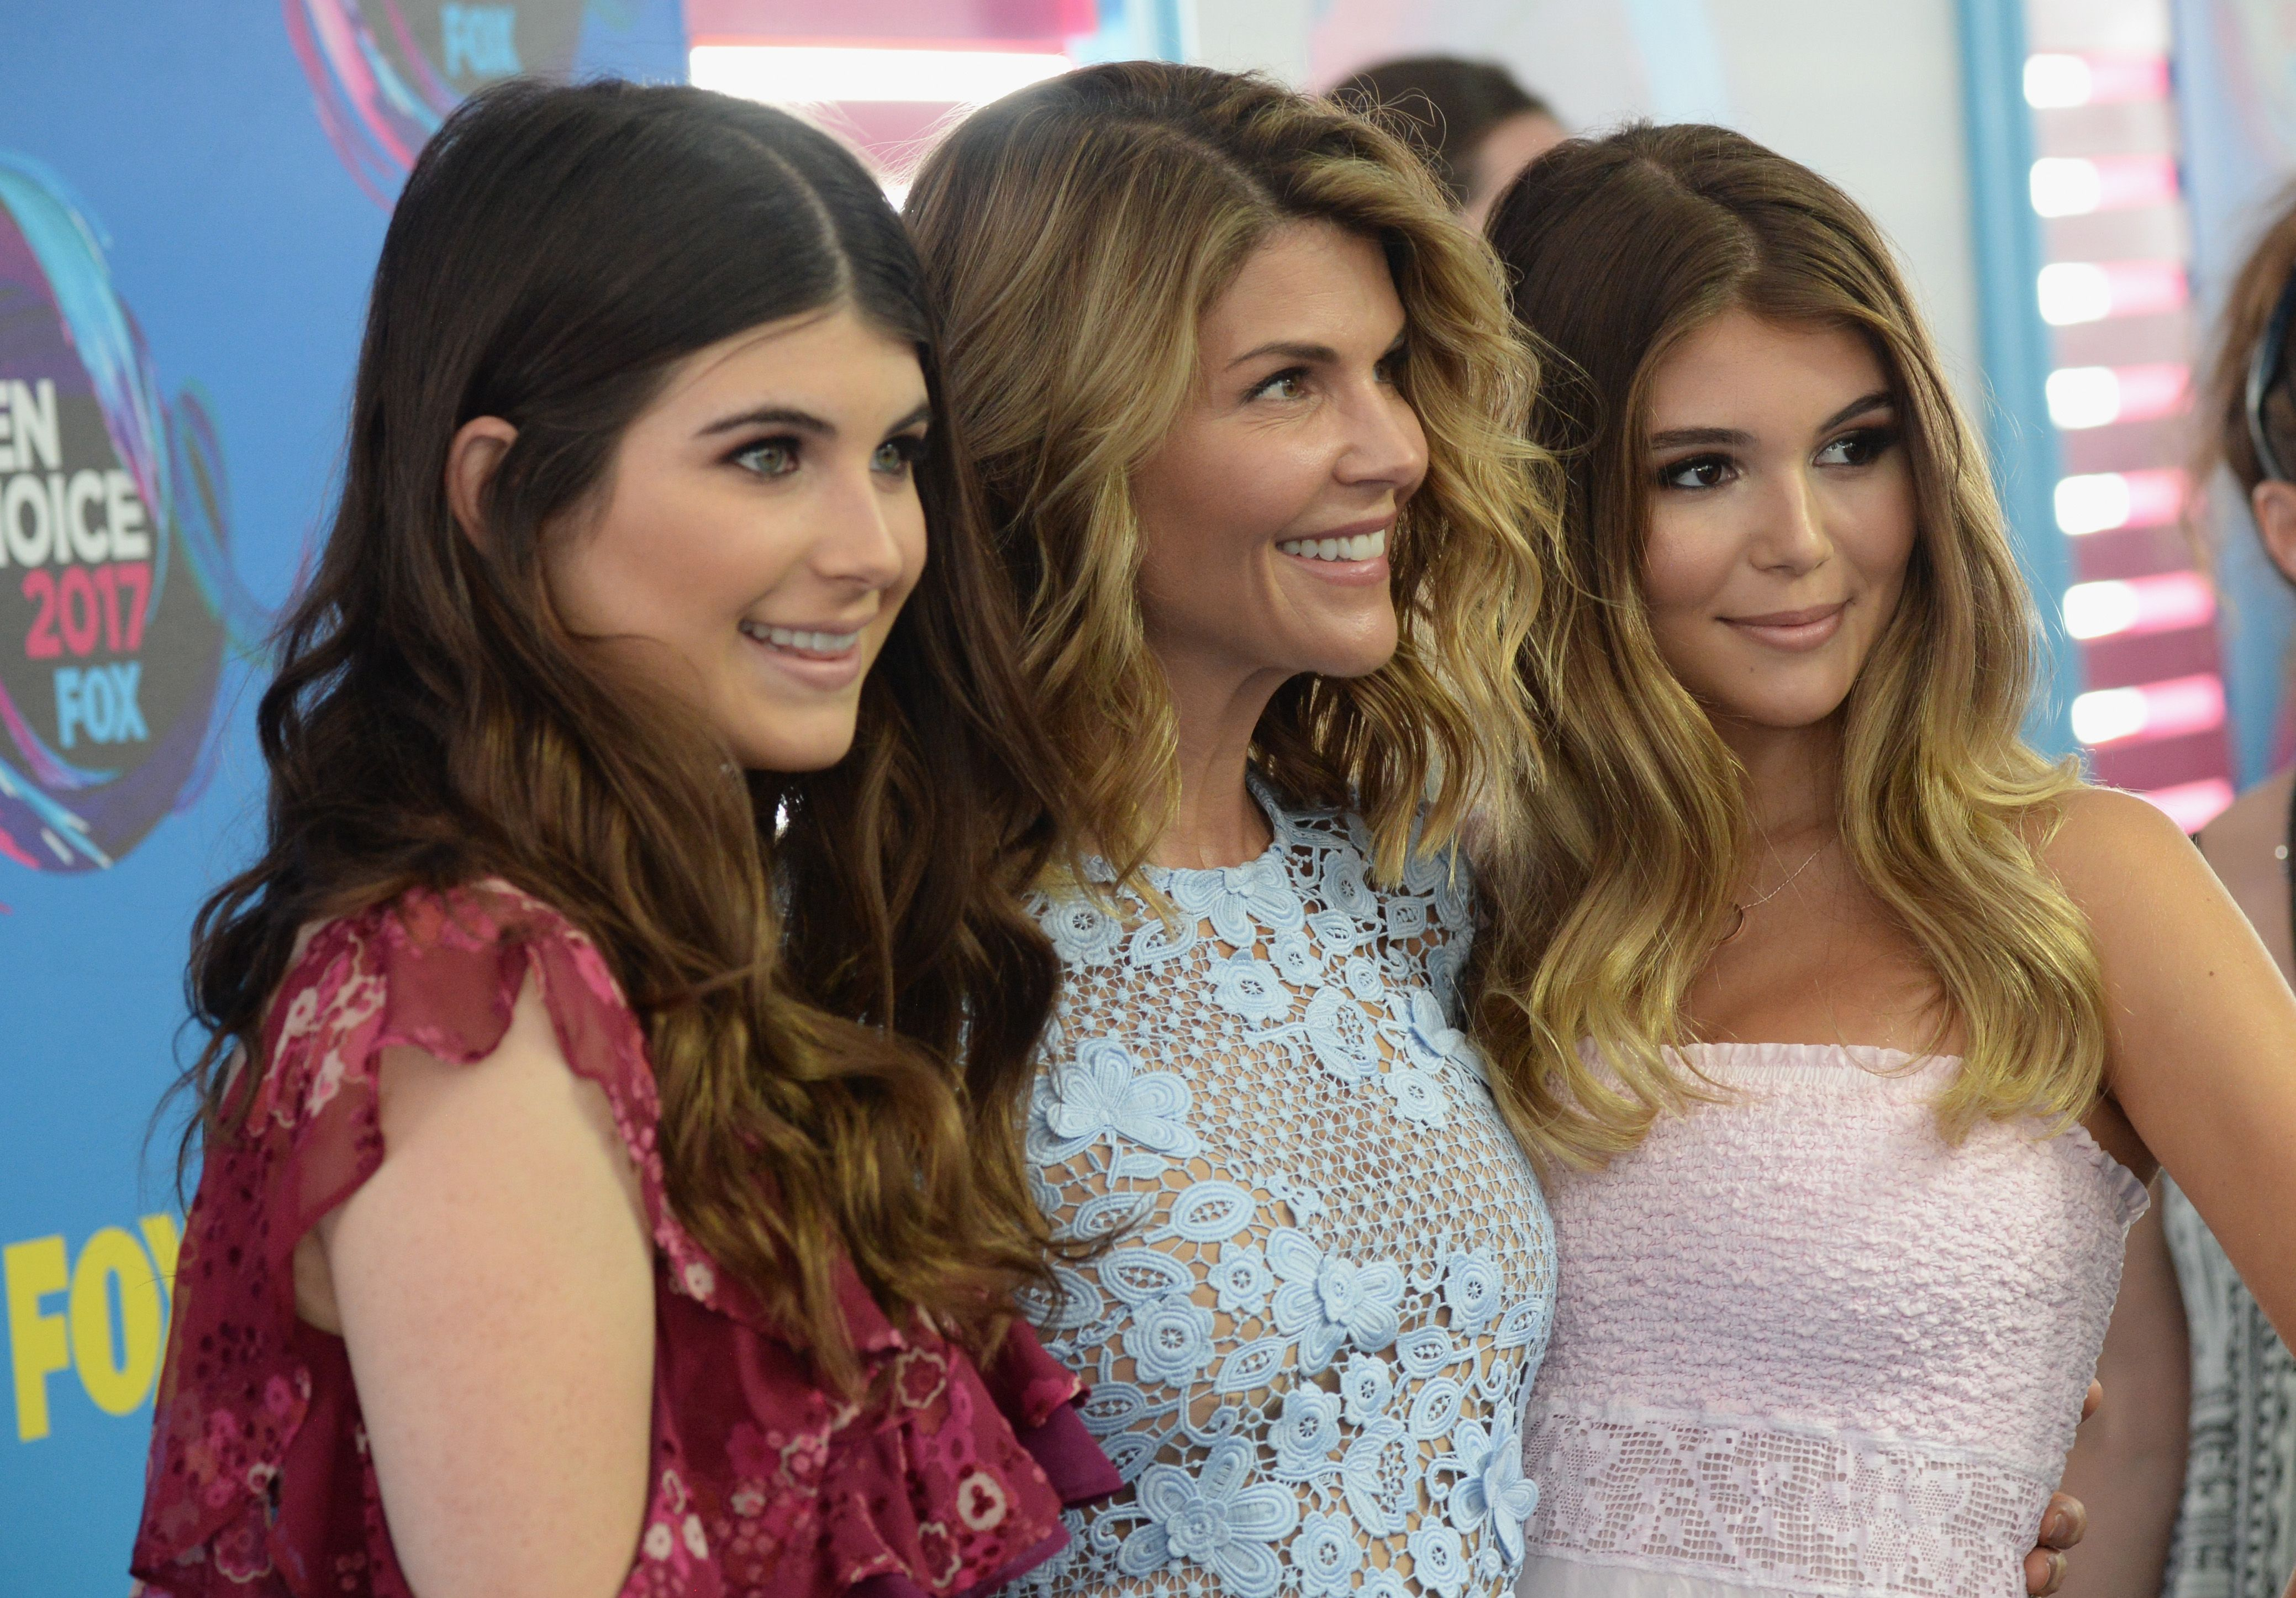 Lori Loughlin's Daughter Isabella Giannulli Deleted Her Instagram Before Her Parents' Trial